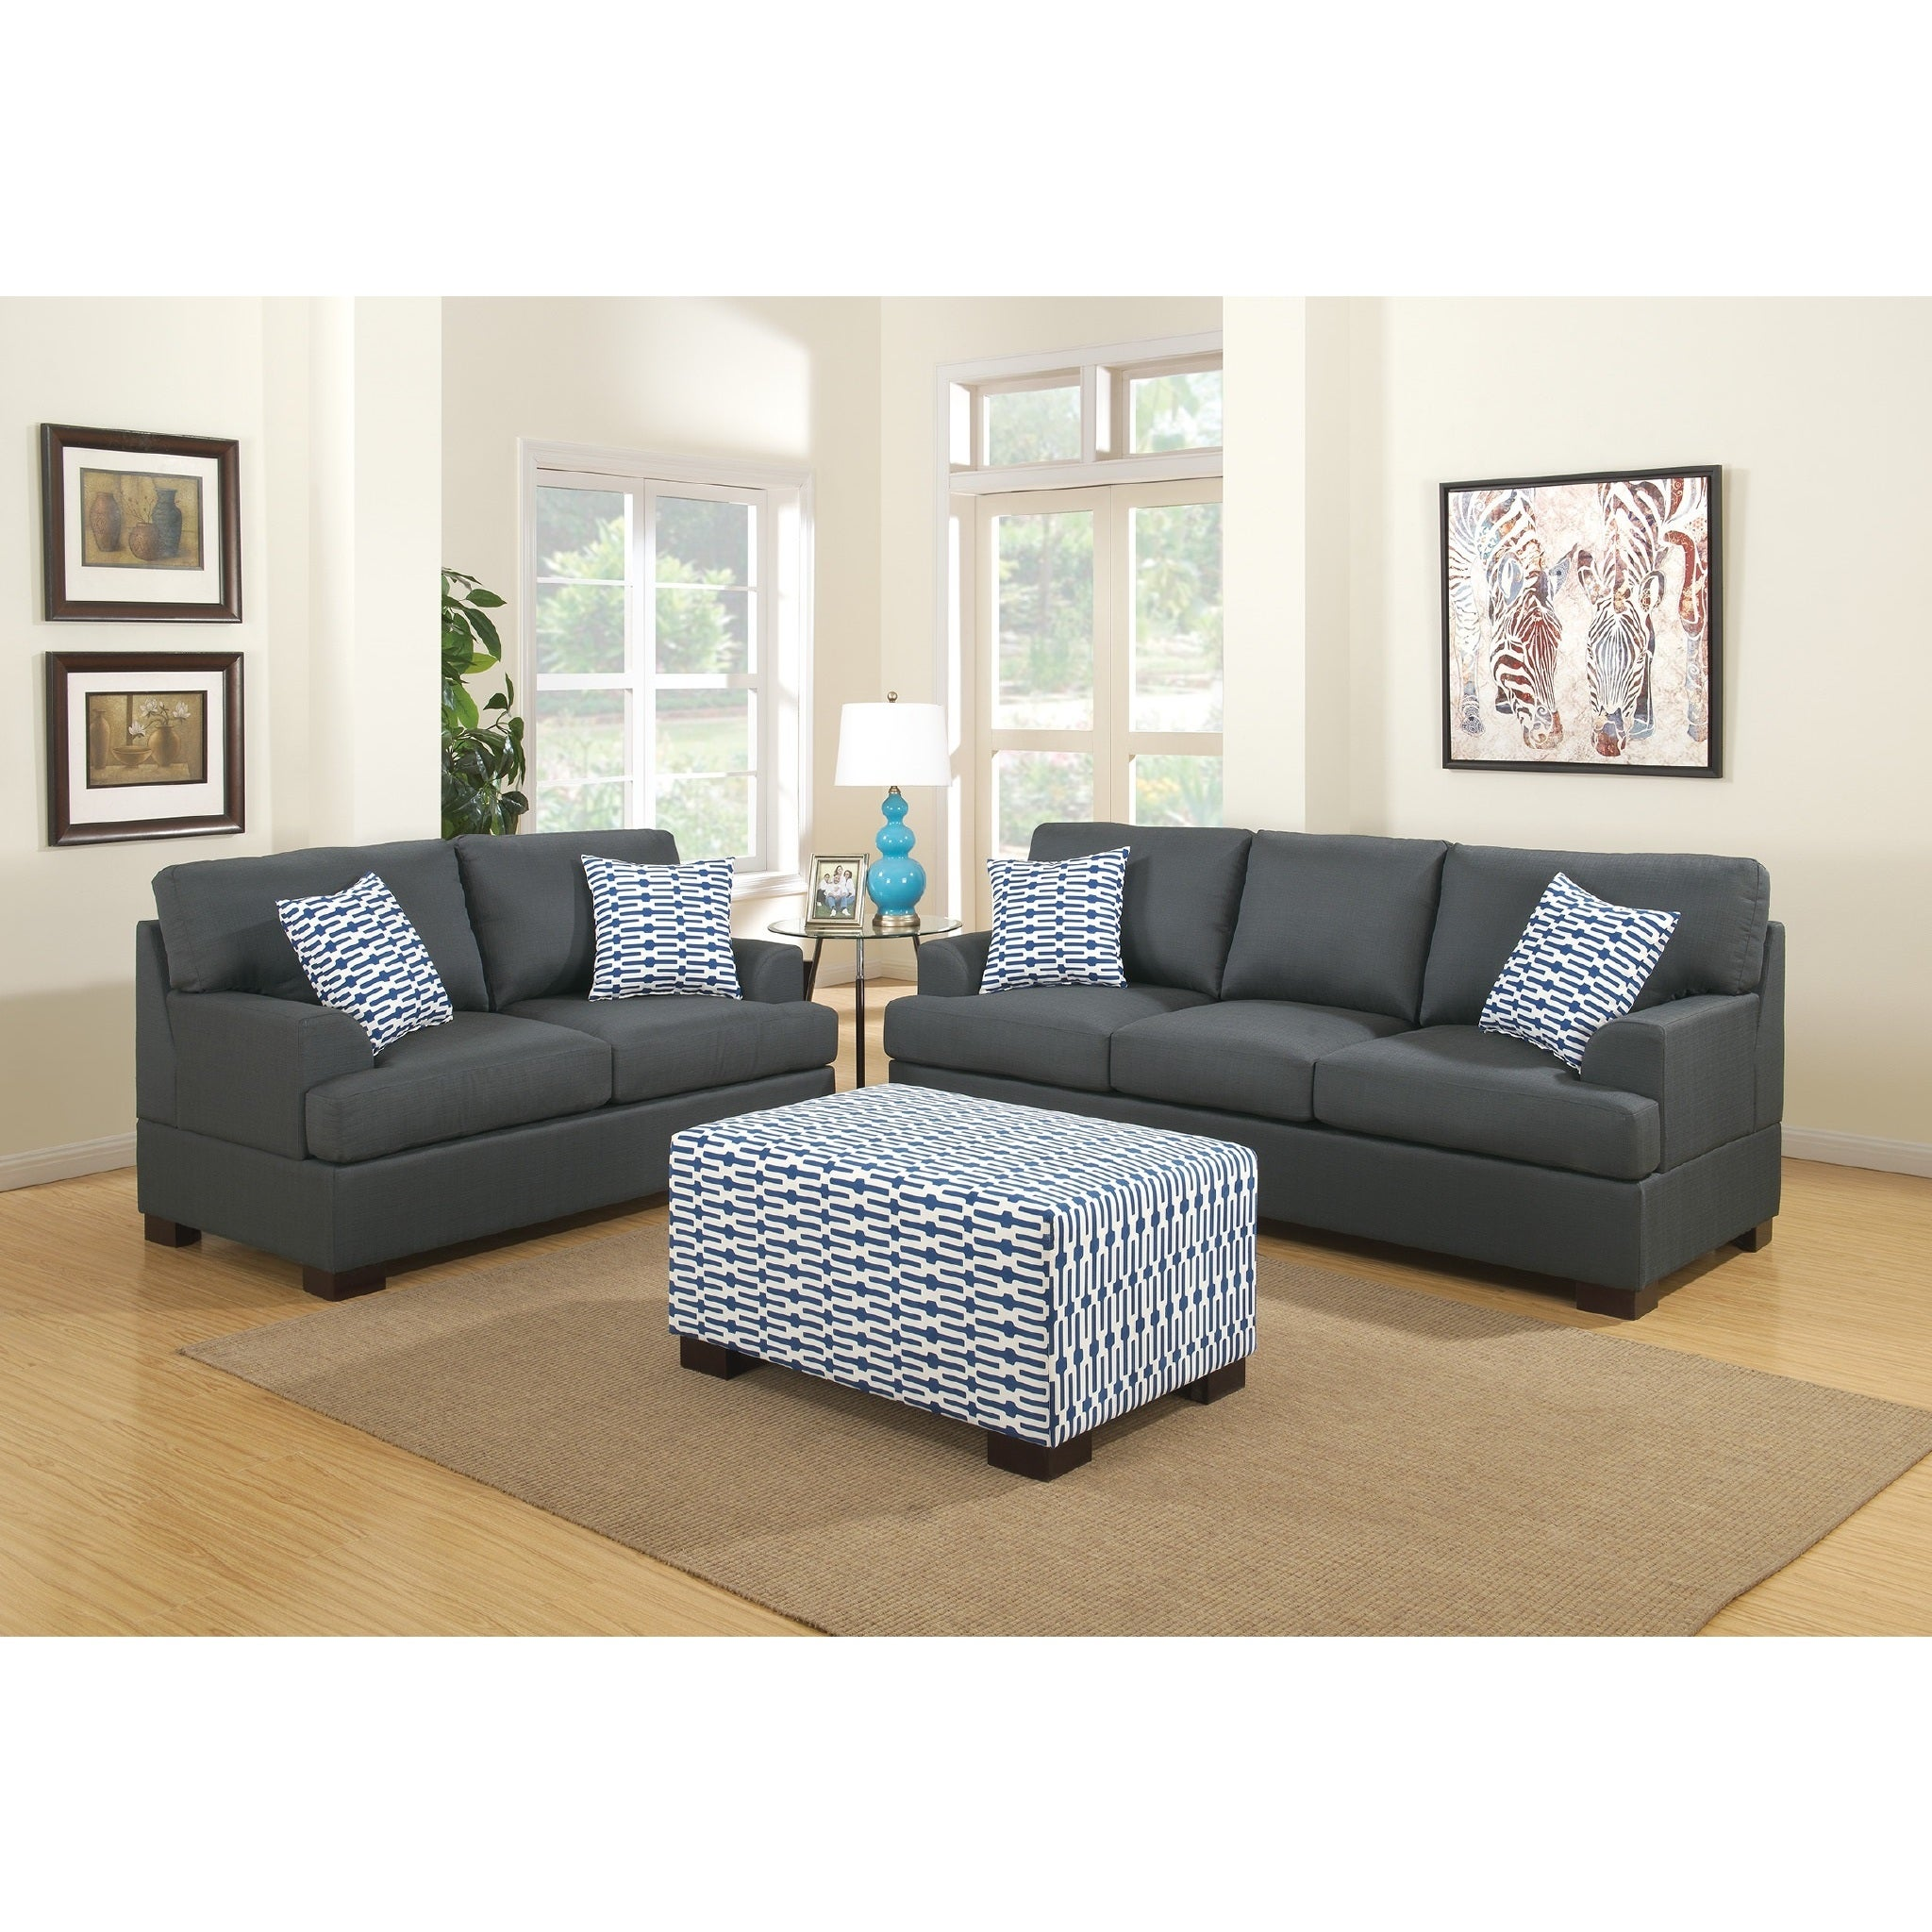 Marengo Grey 3 piece Sofa Set